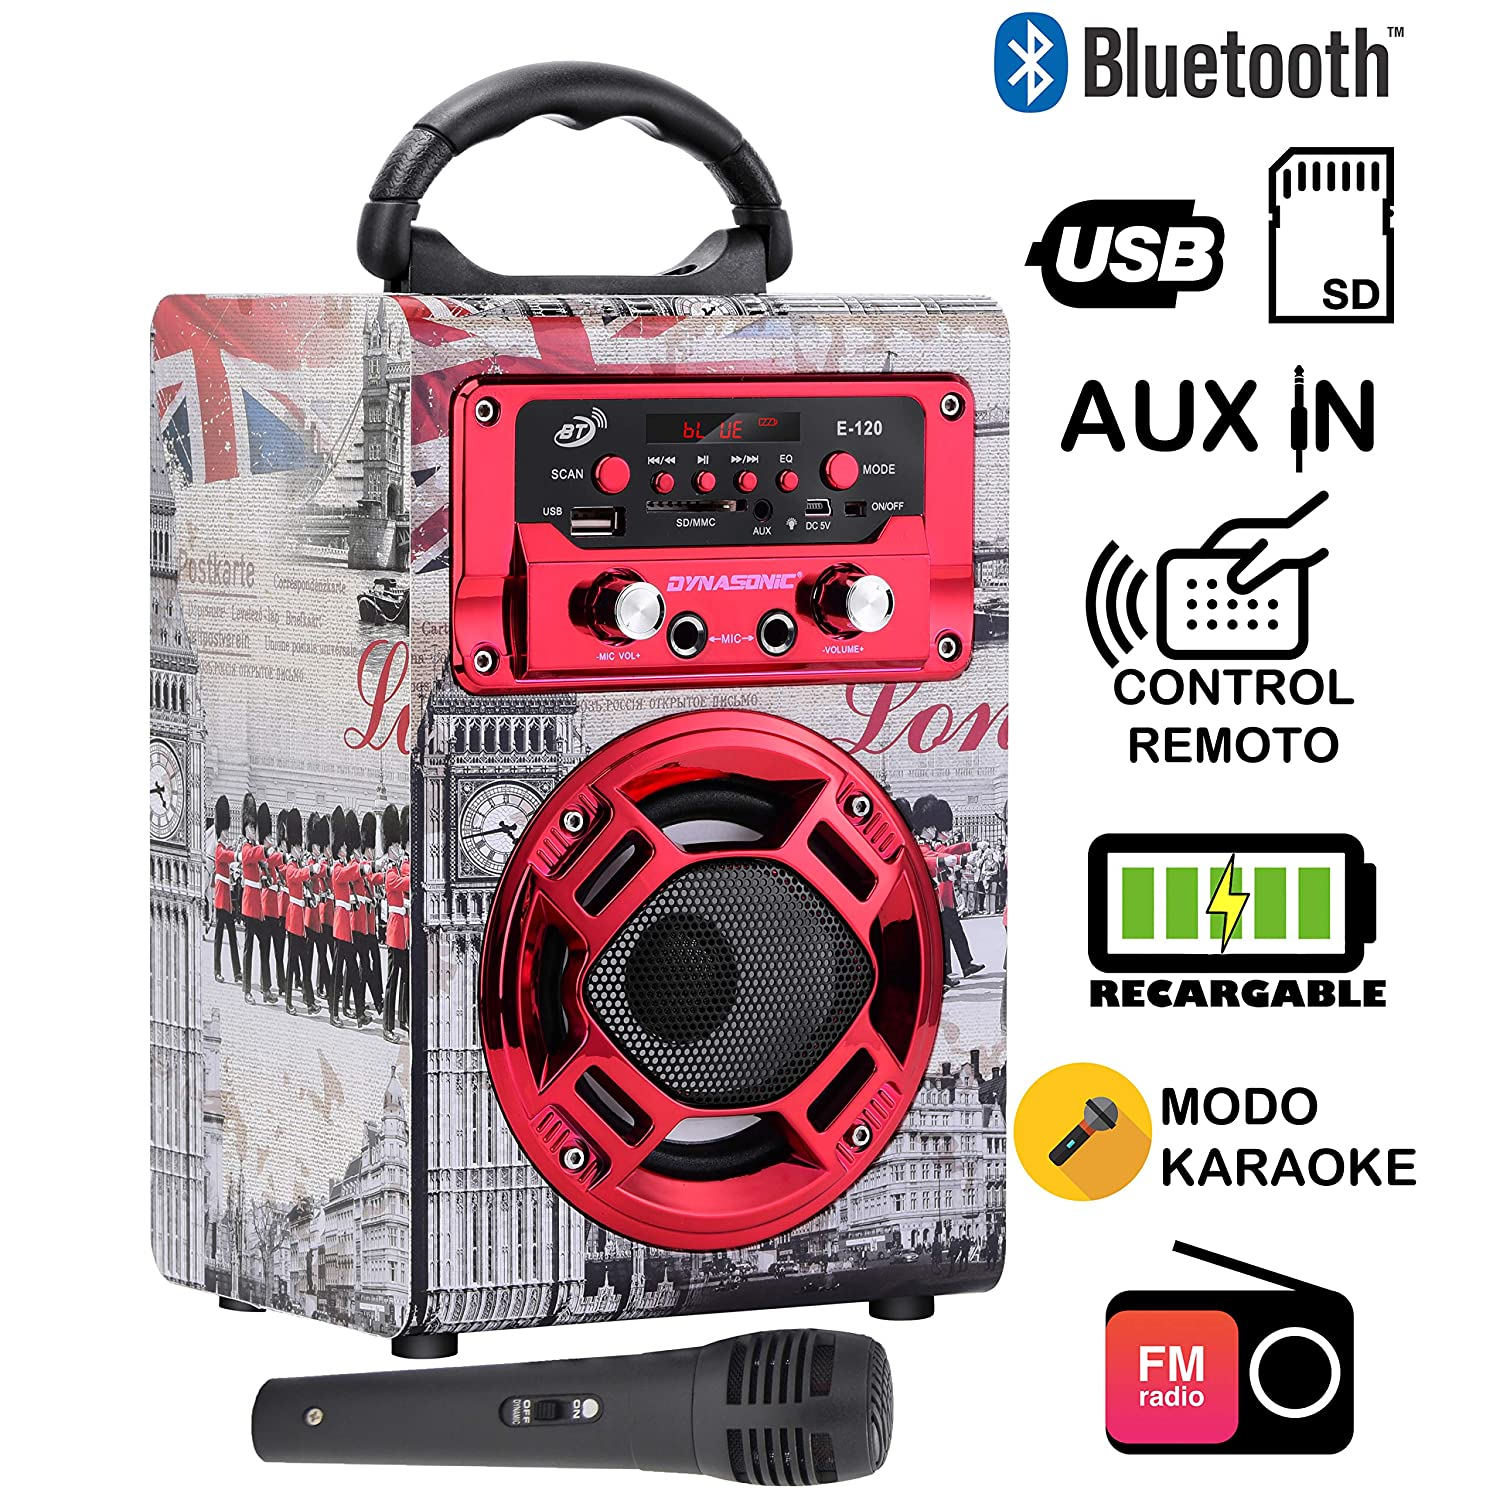 Dynasonic 120-1 - Mini Altavoz Bluetooth Portátil, Diseño Londres, Color Rojo